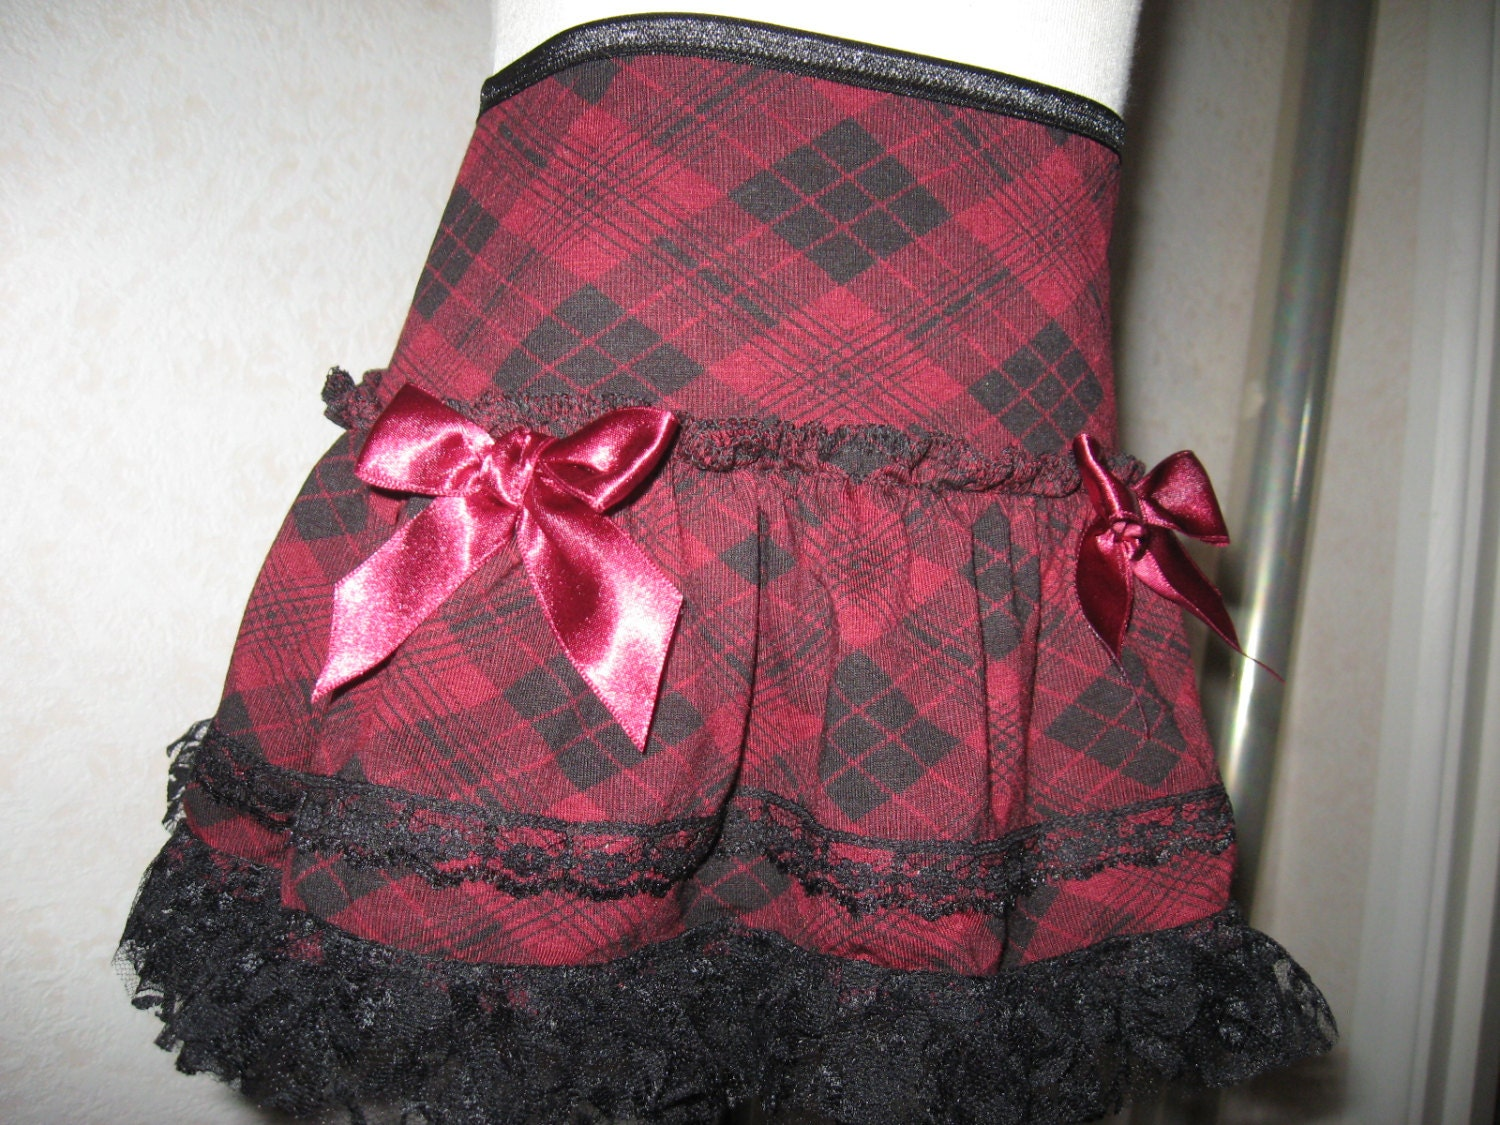 sequoia-BlackBurgundy RedCheck Lace Frilly SkirtPunk-All